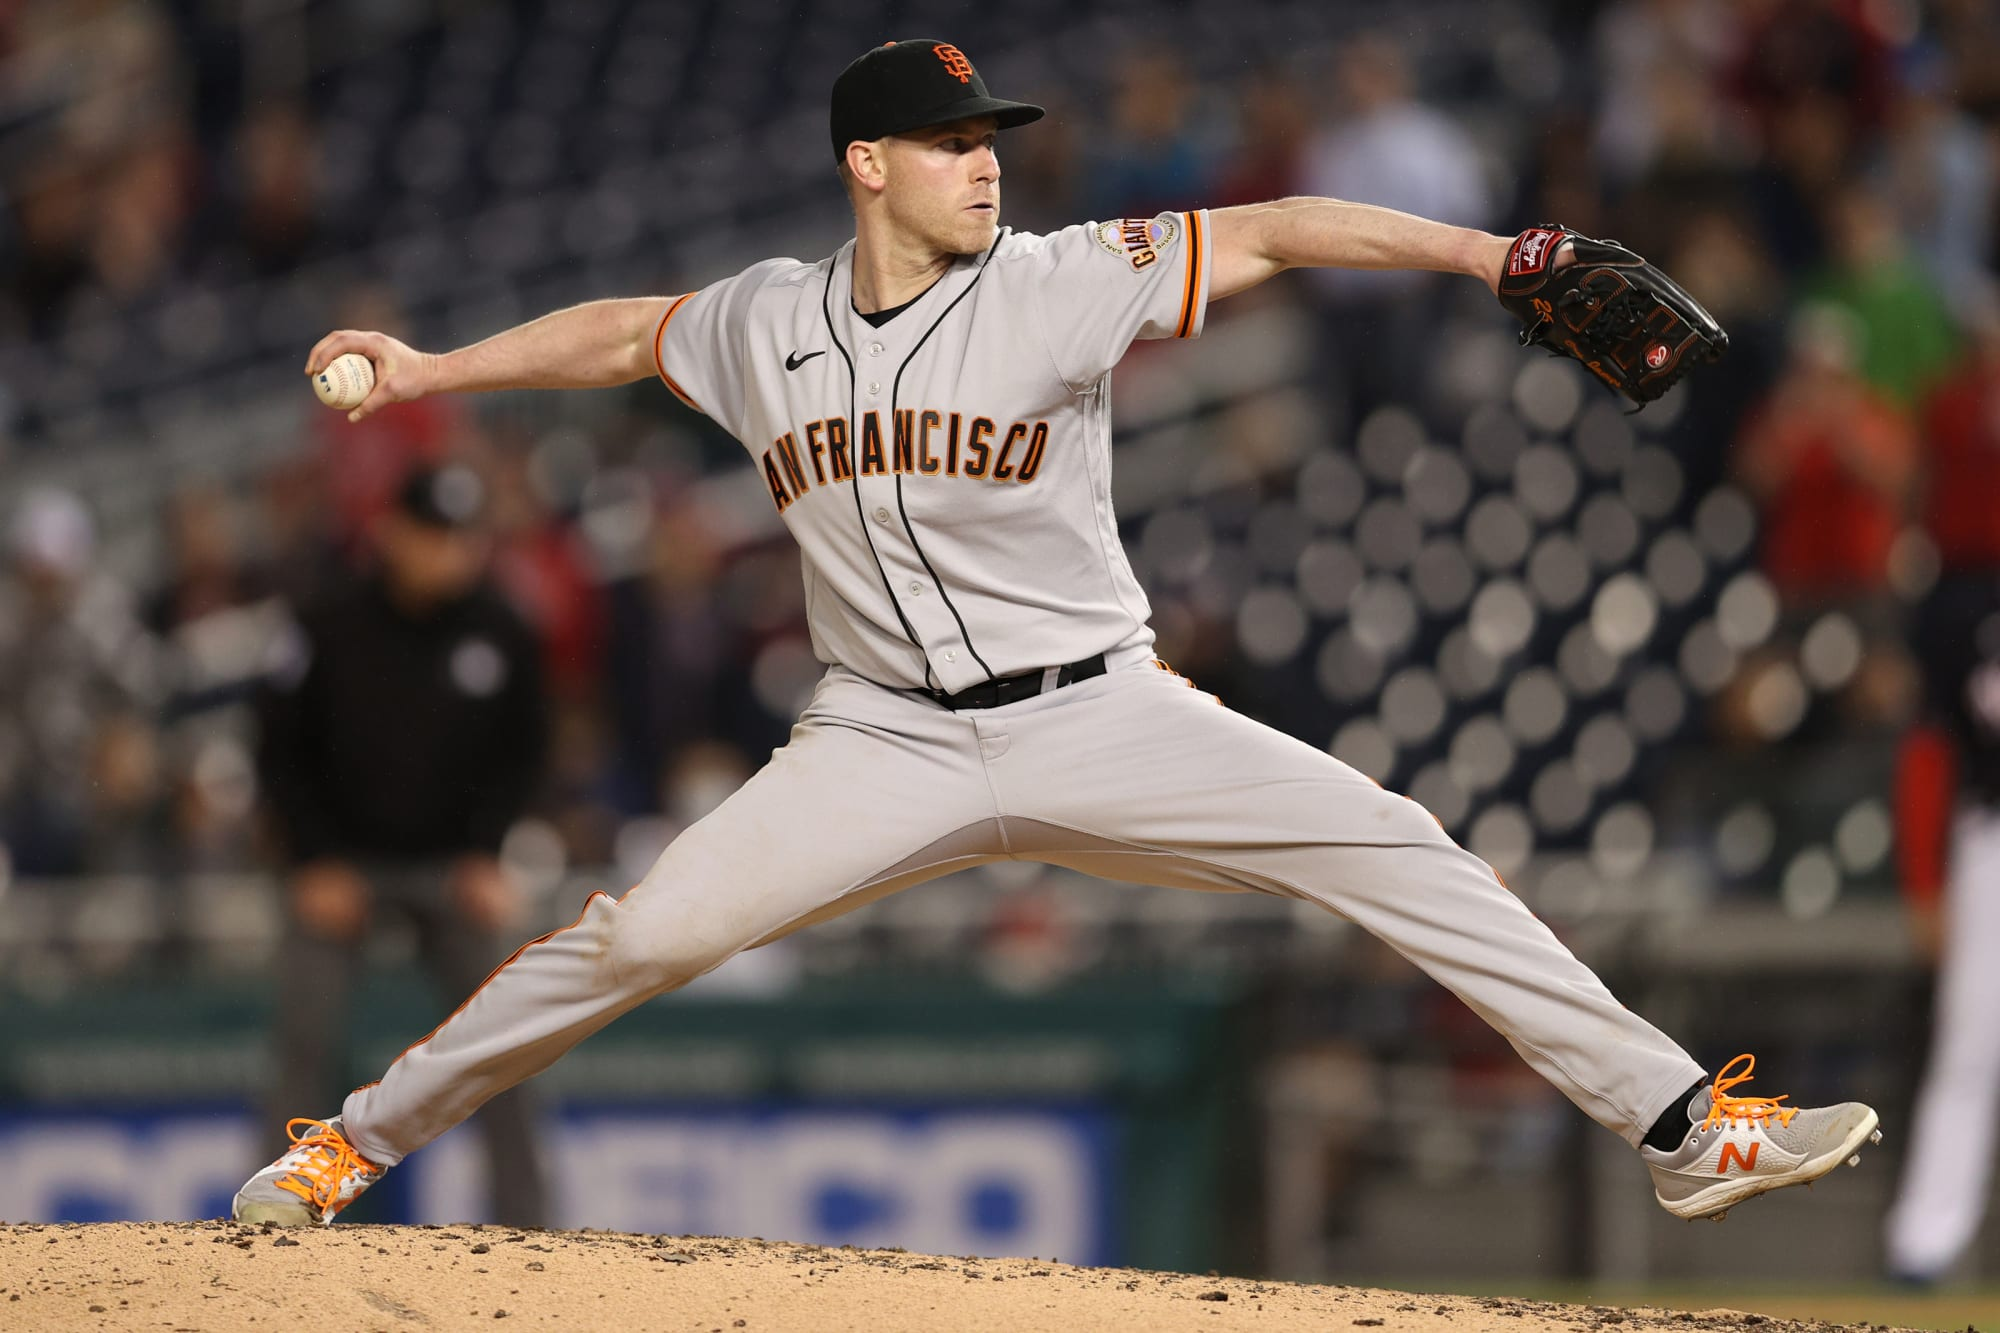 SF Giants: Anthony DeSclafani dazzles in 1-0 victory against Nationals